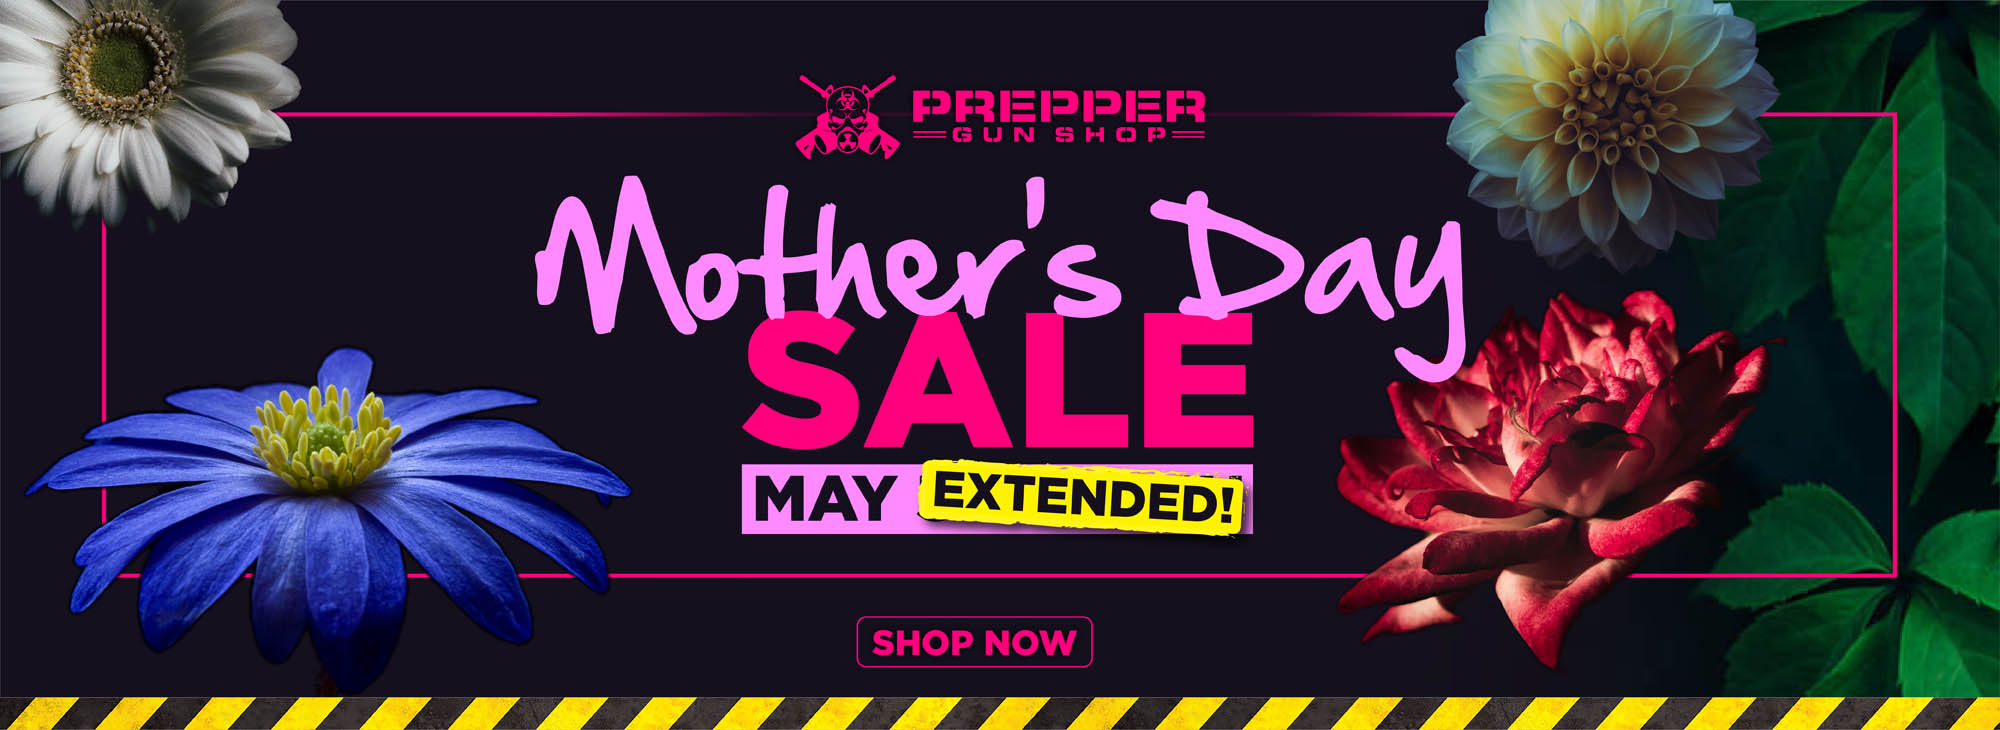 Mother's Day Sale Going On Now!